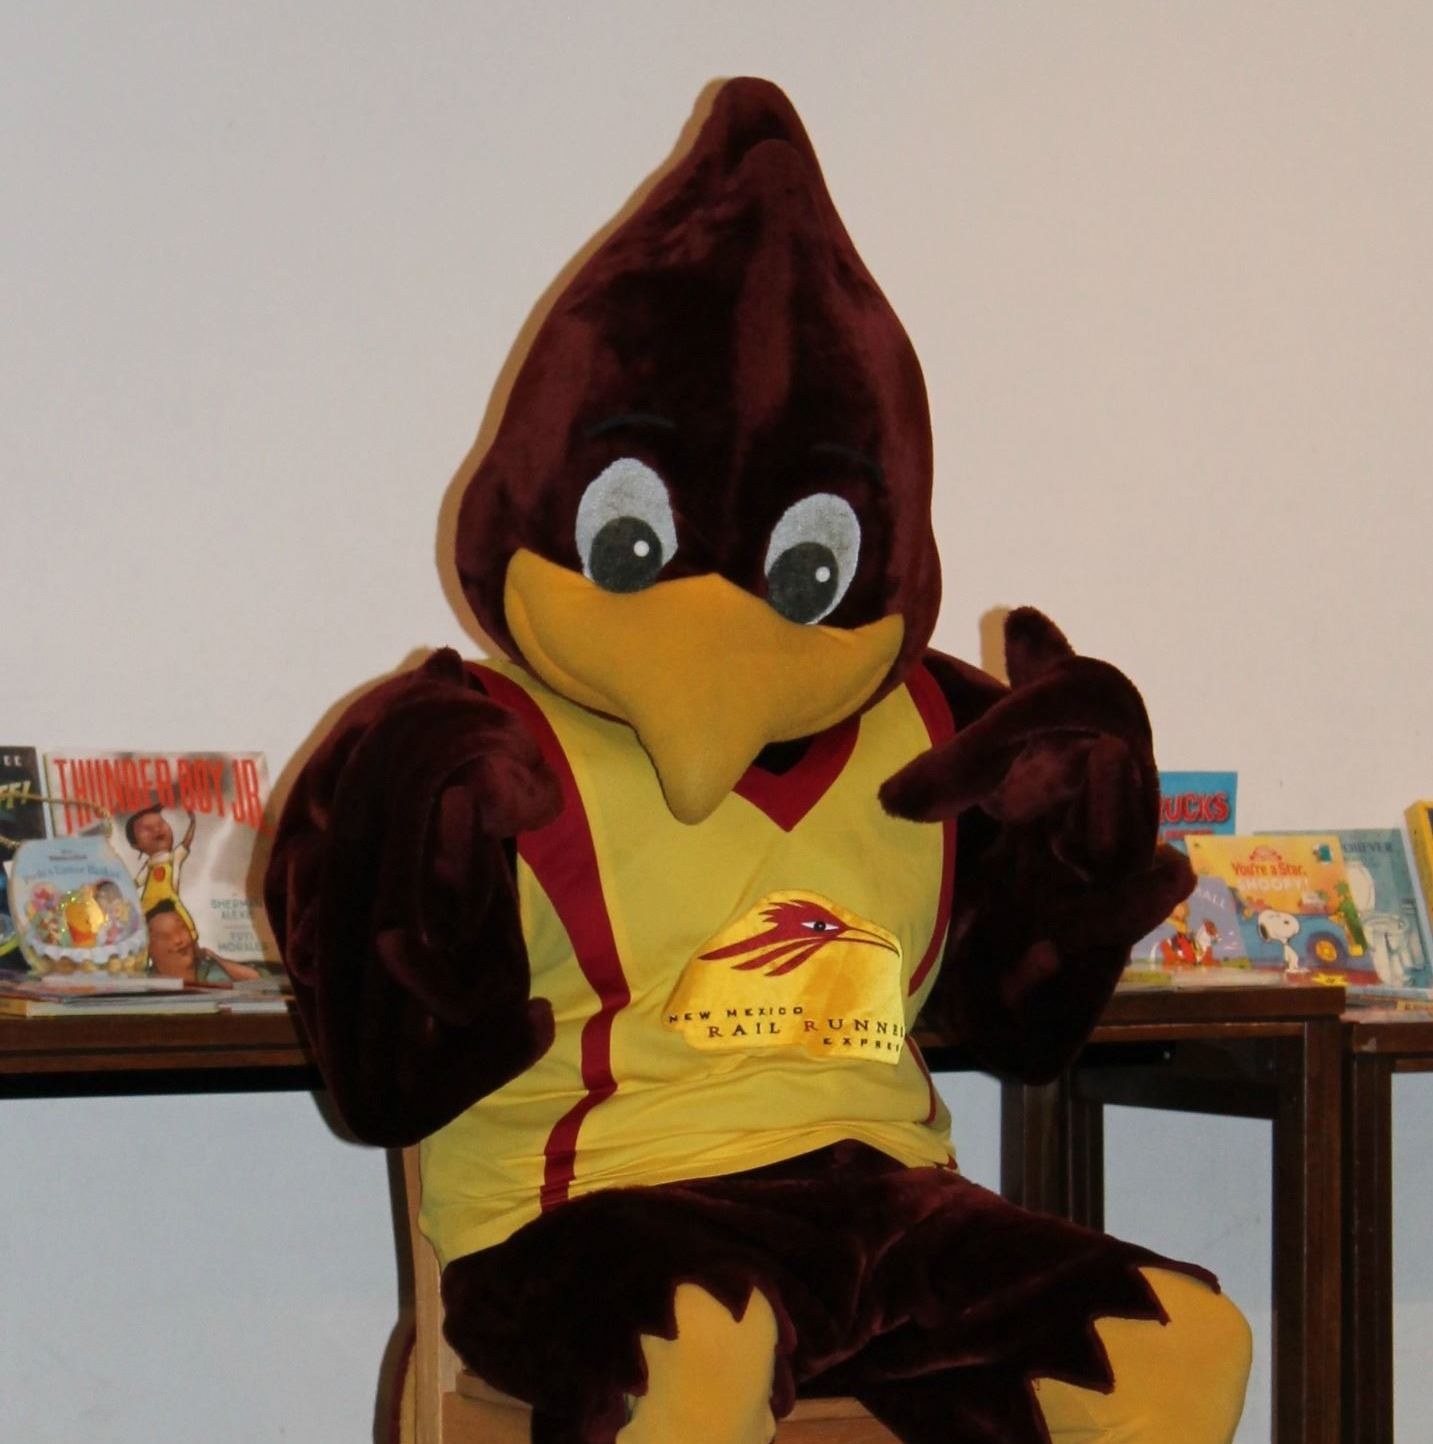 Rail Runner Mascot with Books